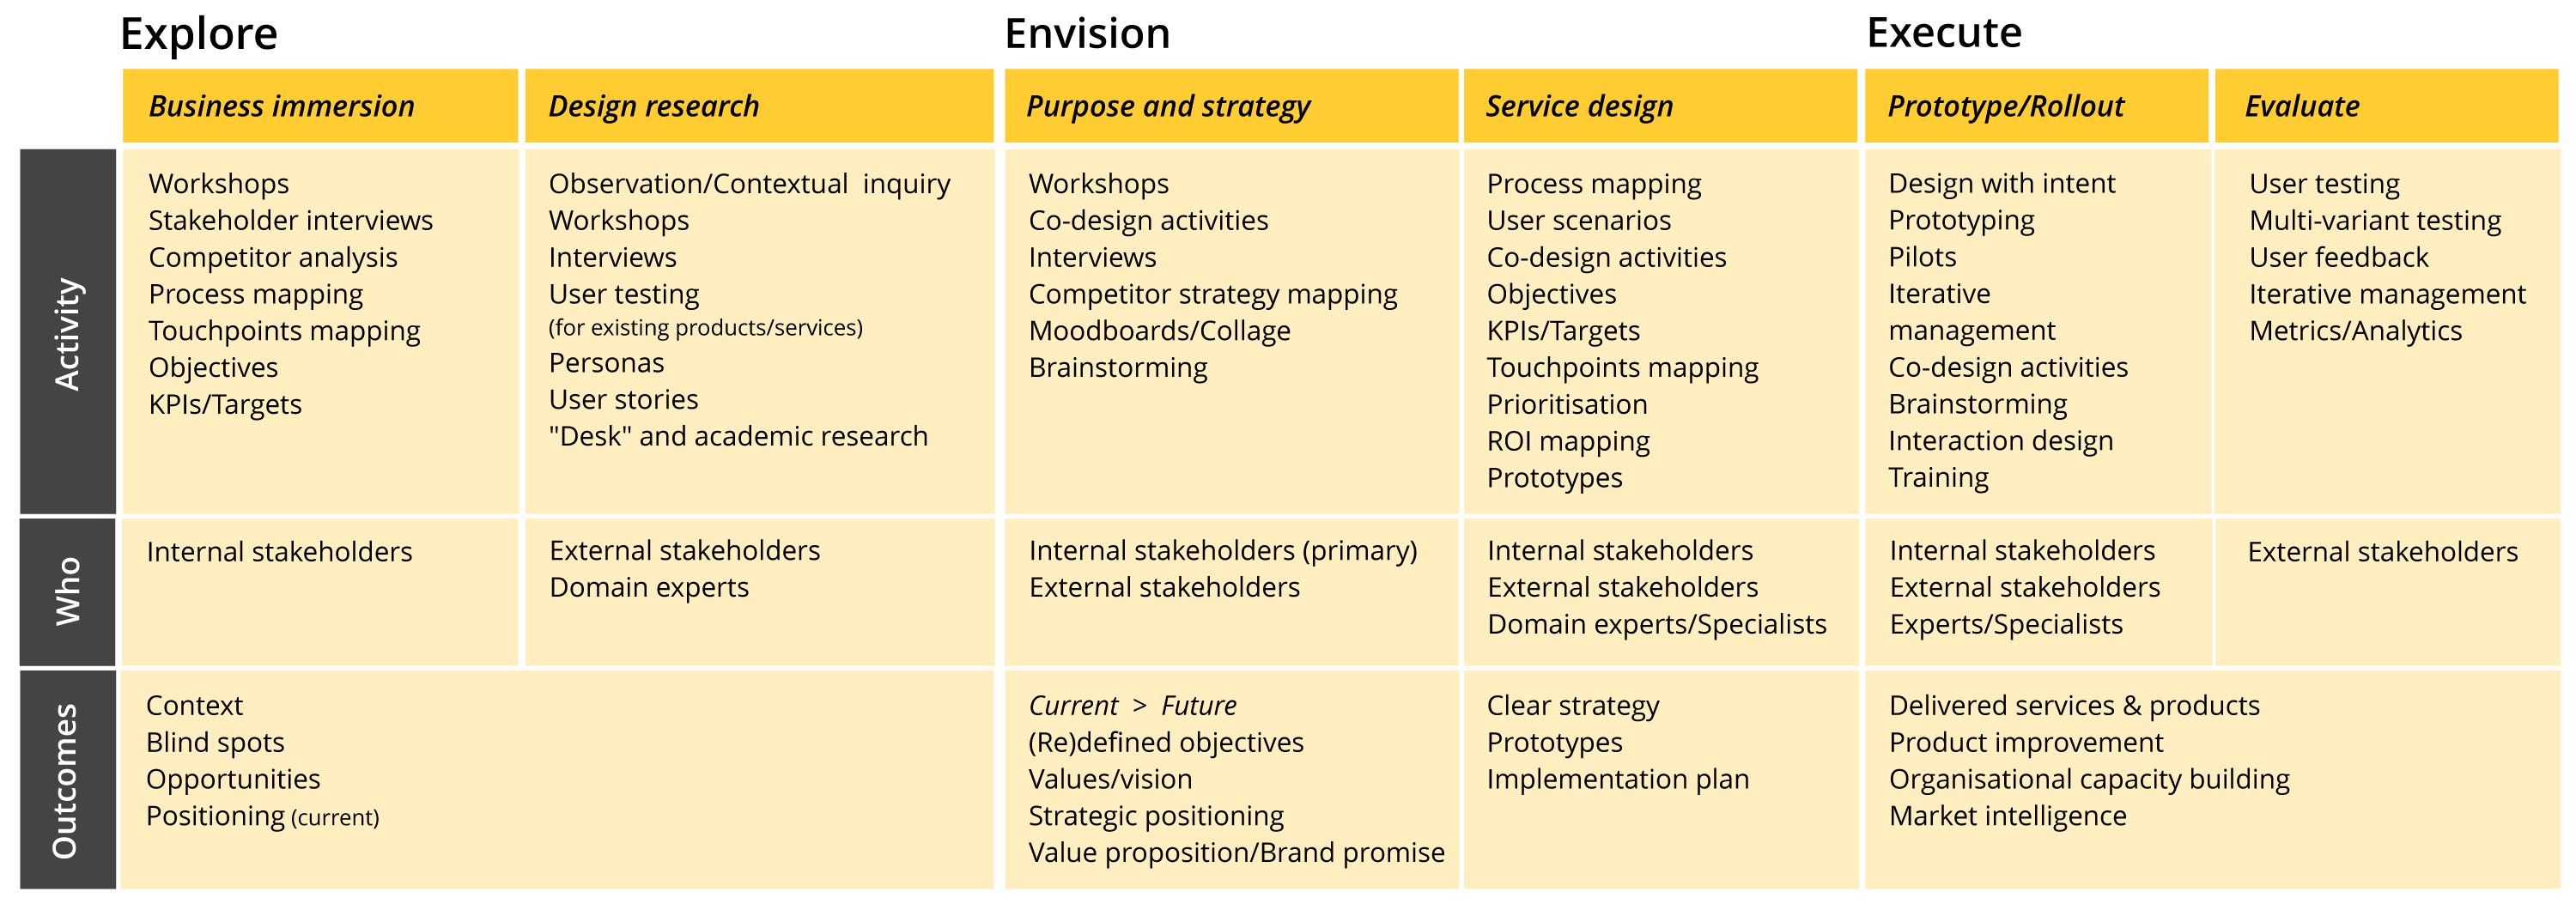 Table outlining the different tools used throughout Zumio's process